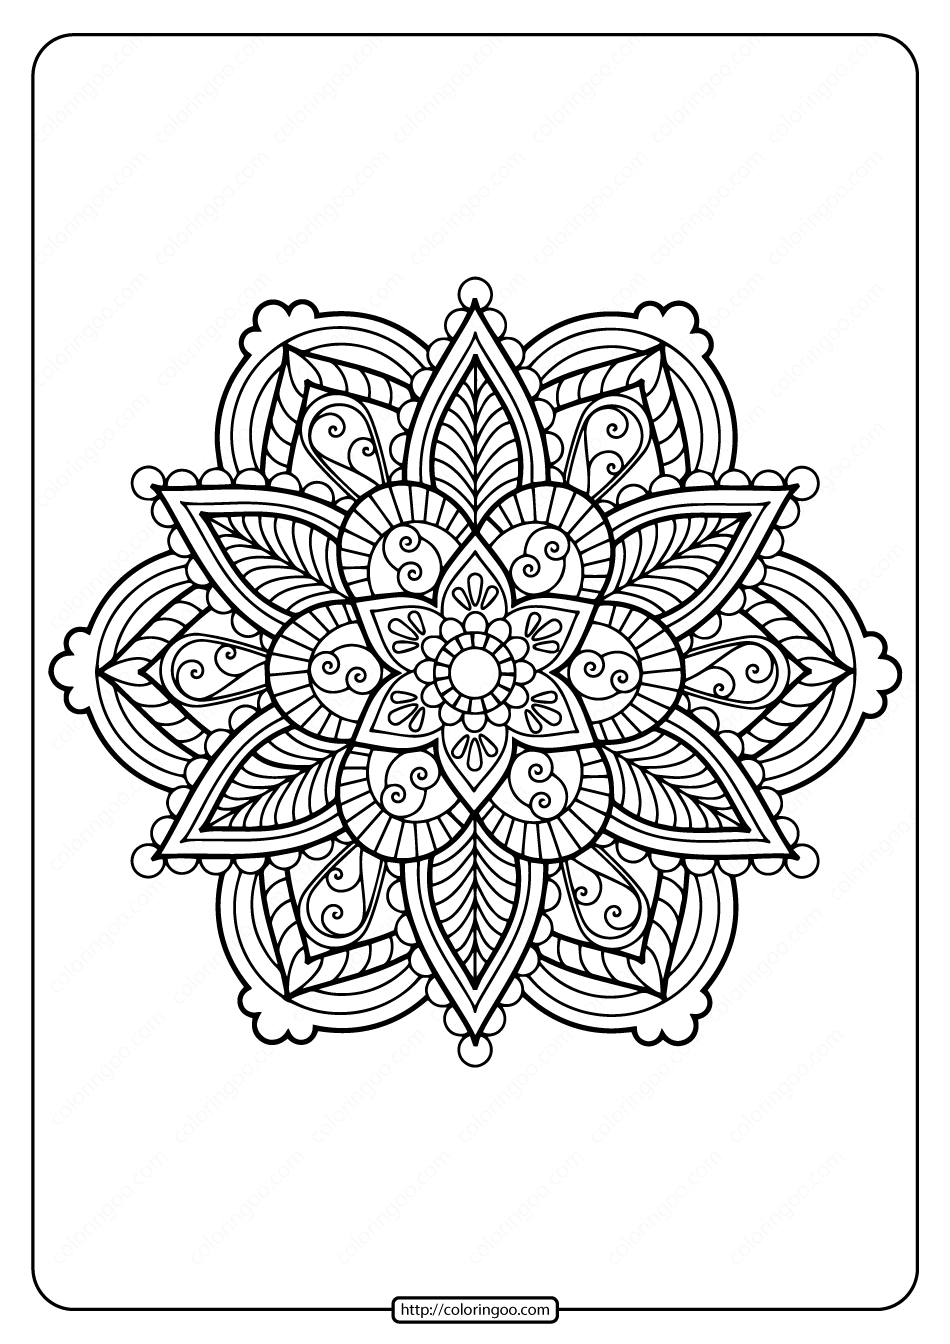 Flower Mandala Coloring Pages Pdf